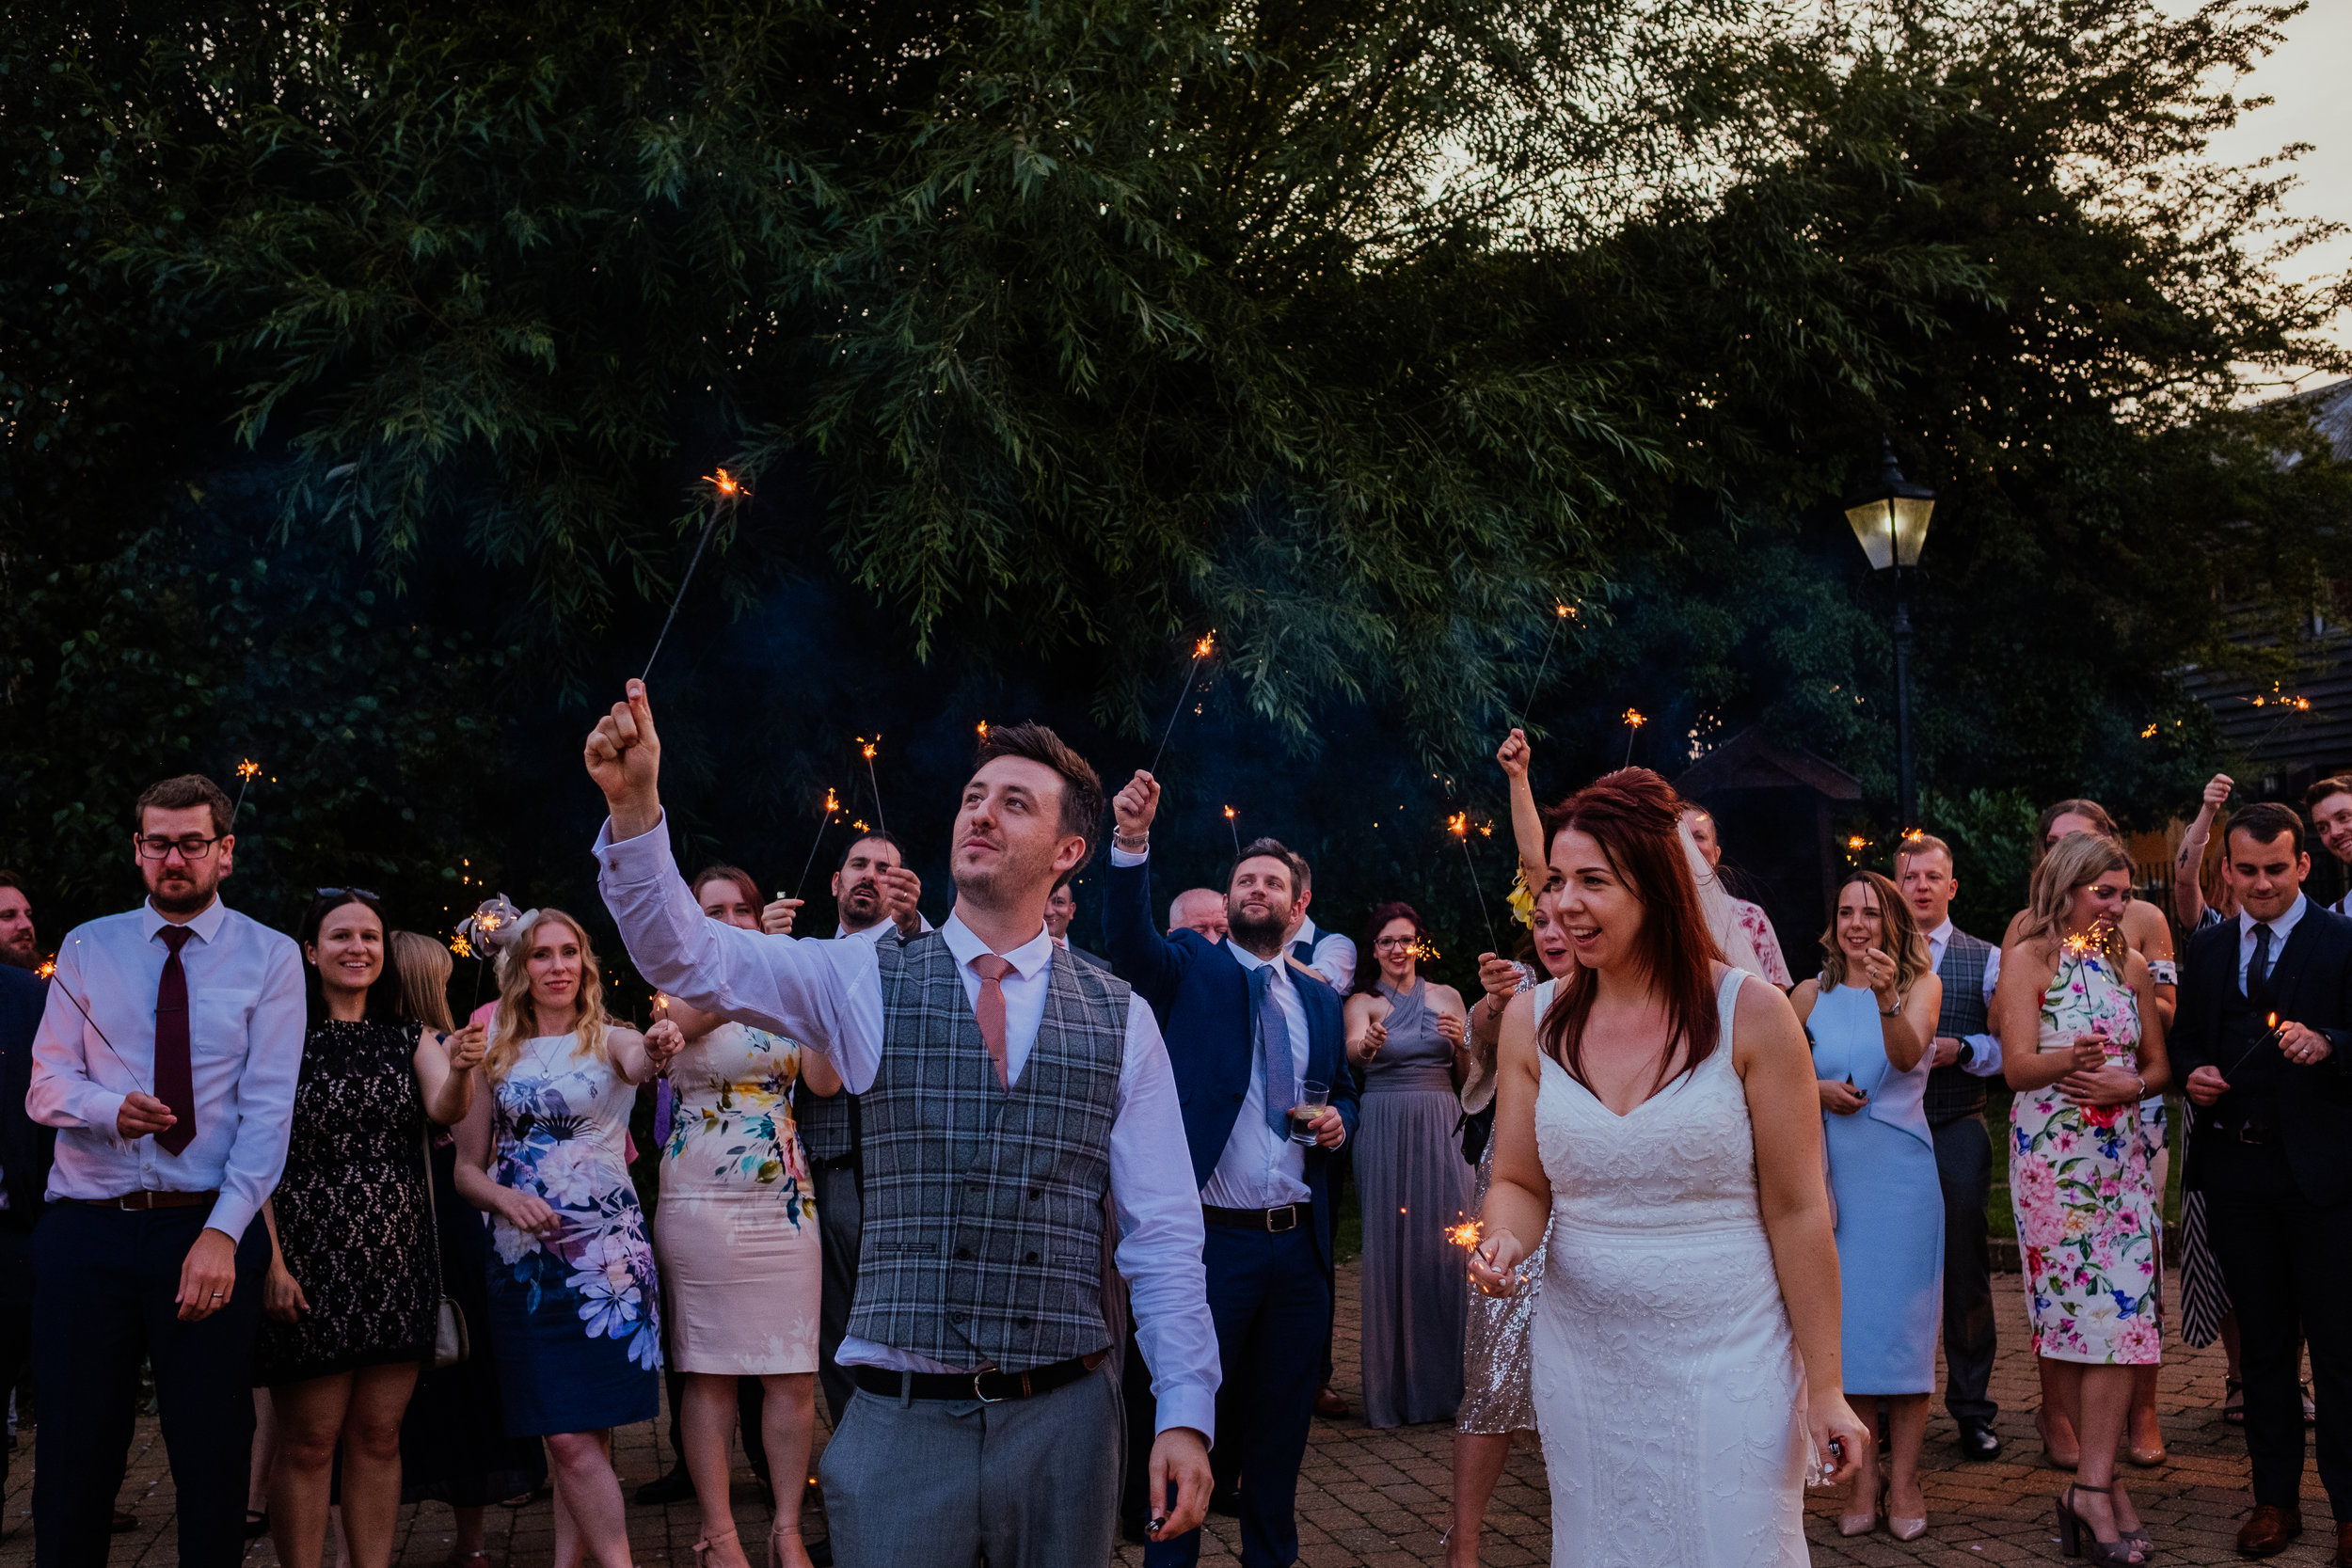 Sparklers during sunset at Tewin Bury Farm wedding